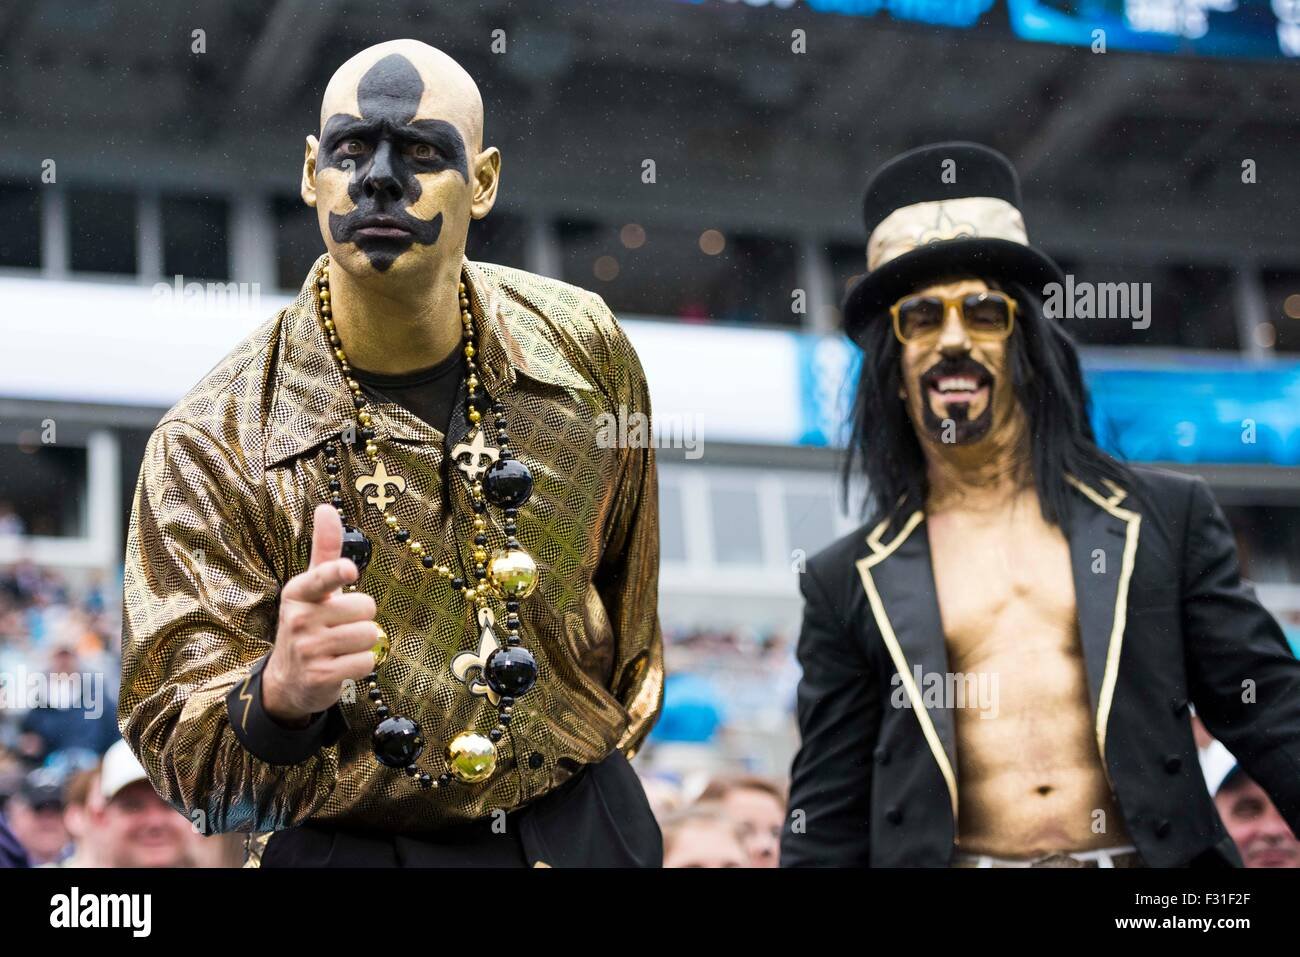 cb2e0b24b New Orleans Saints fans during the NFL football game between the New  Orleans Saints and the Carolina Panthers on Sunday, Sep. 27, 2015 in  Charlotte, NC.